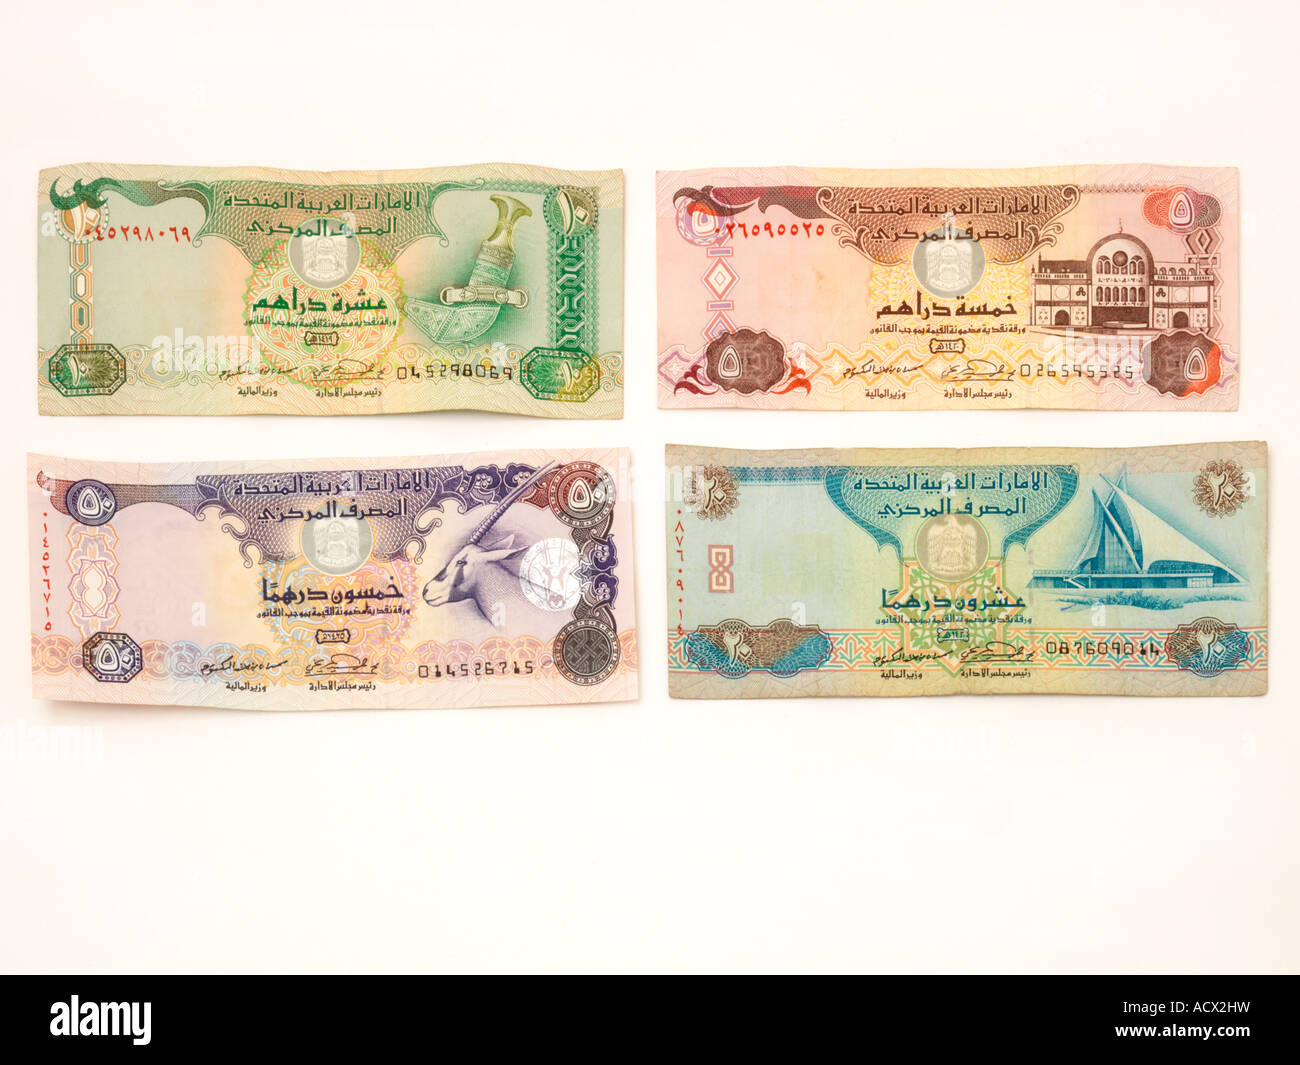 Uae Currency Notes Stock Photo